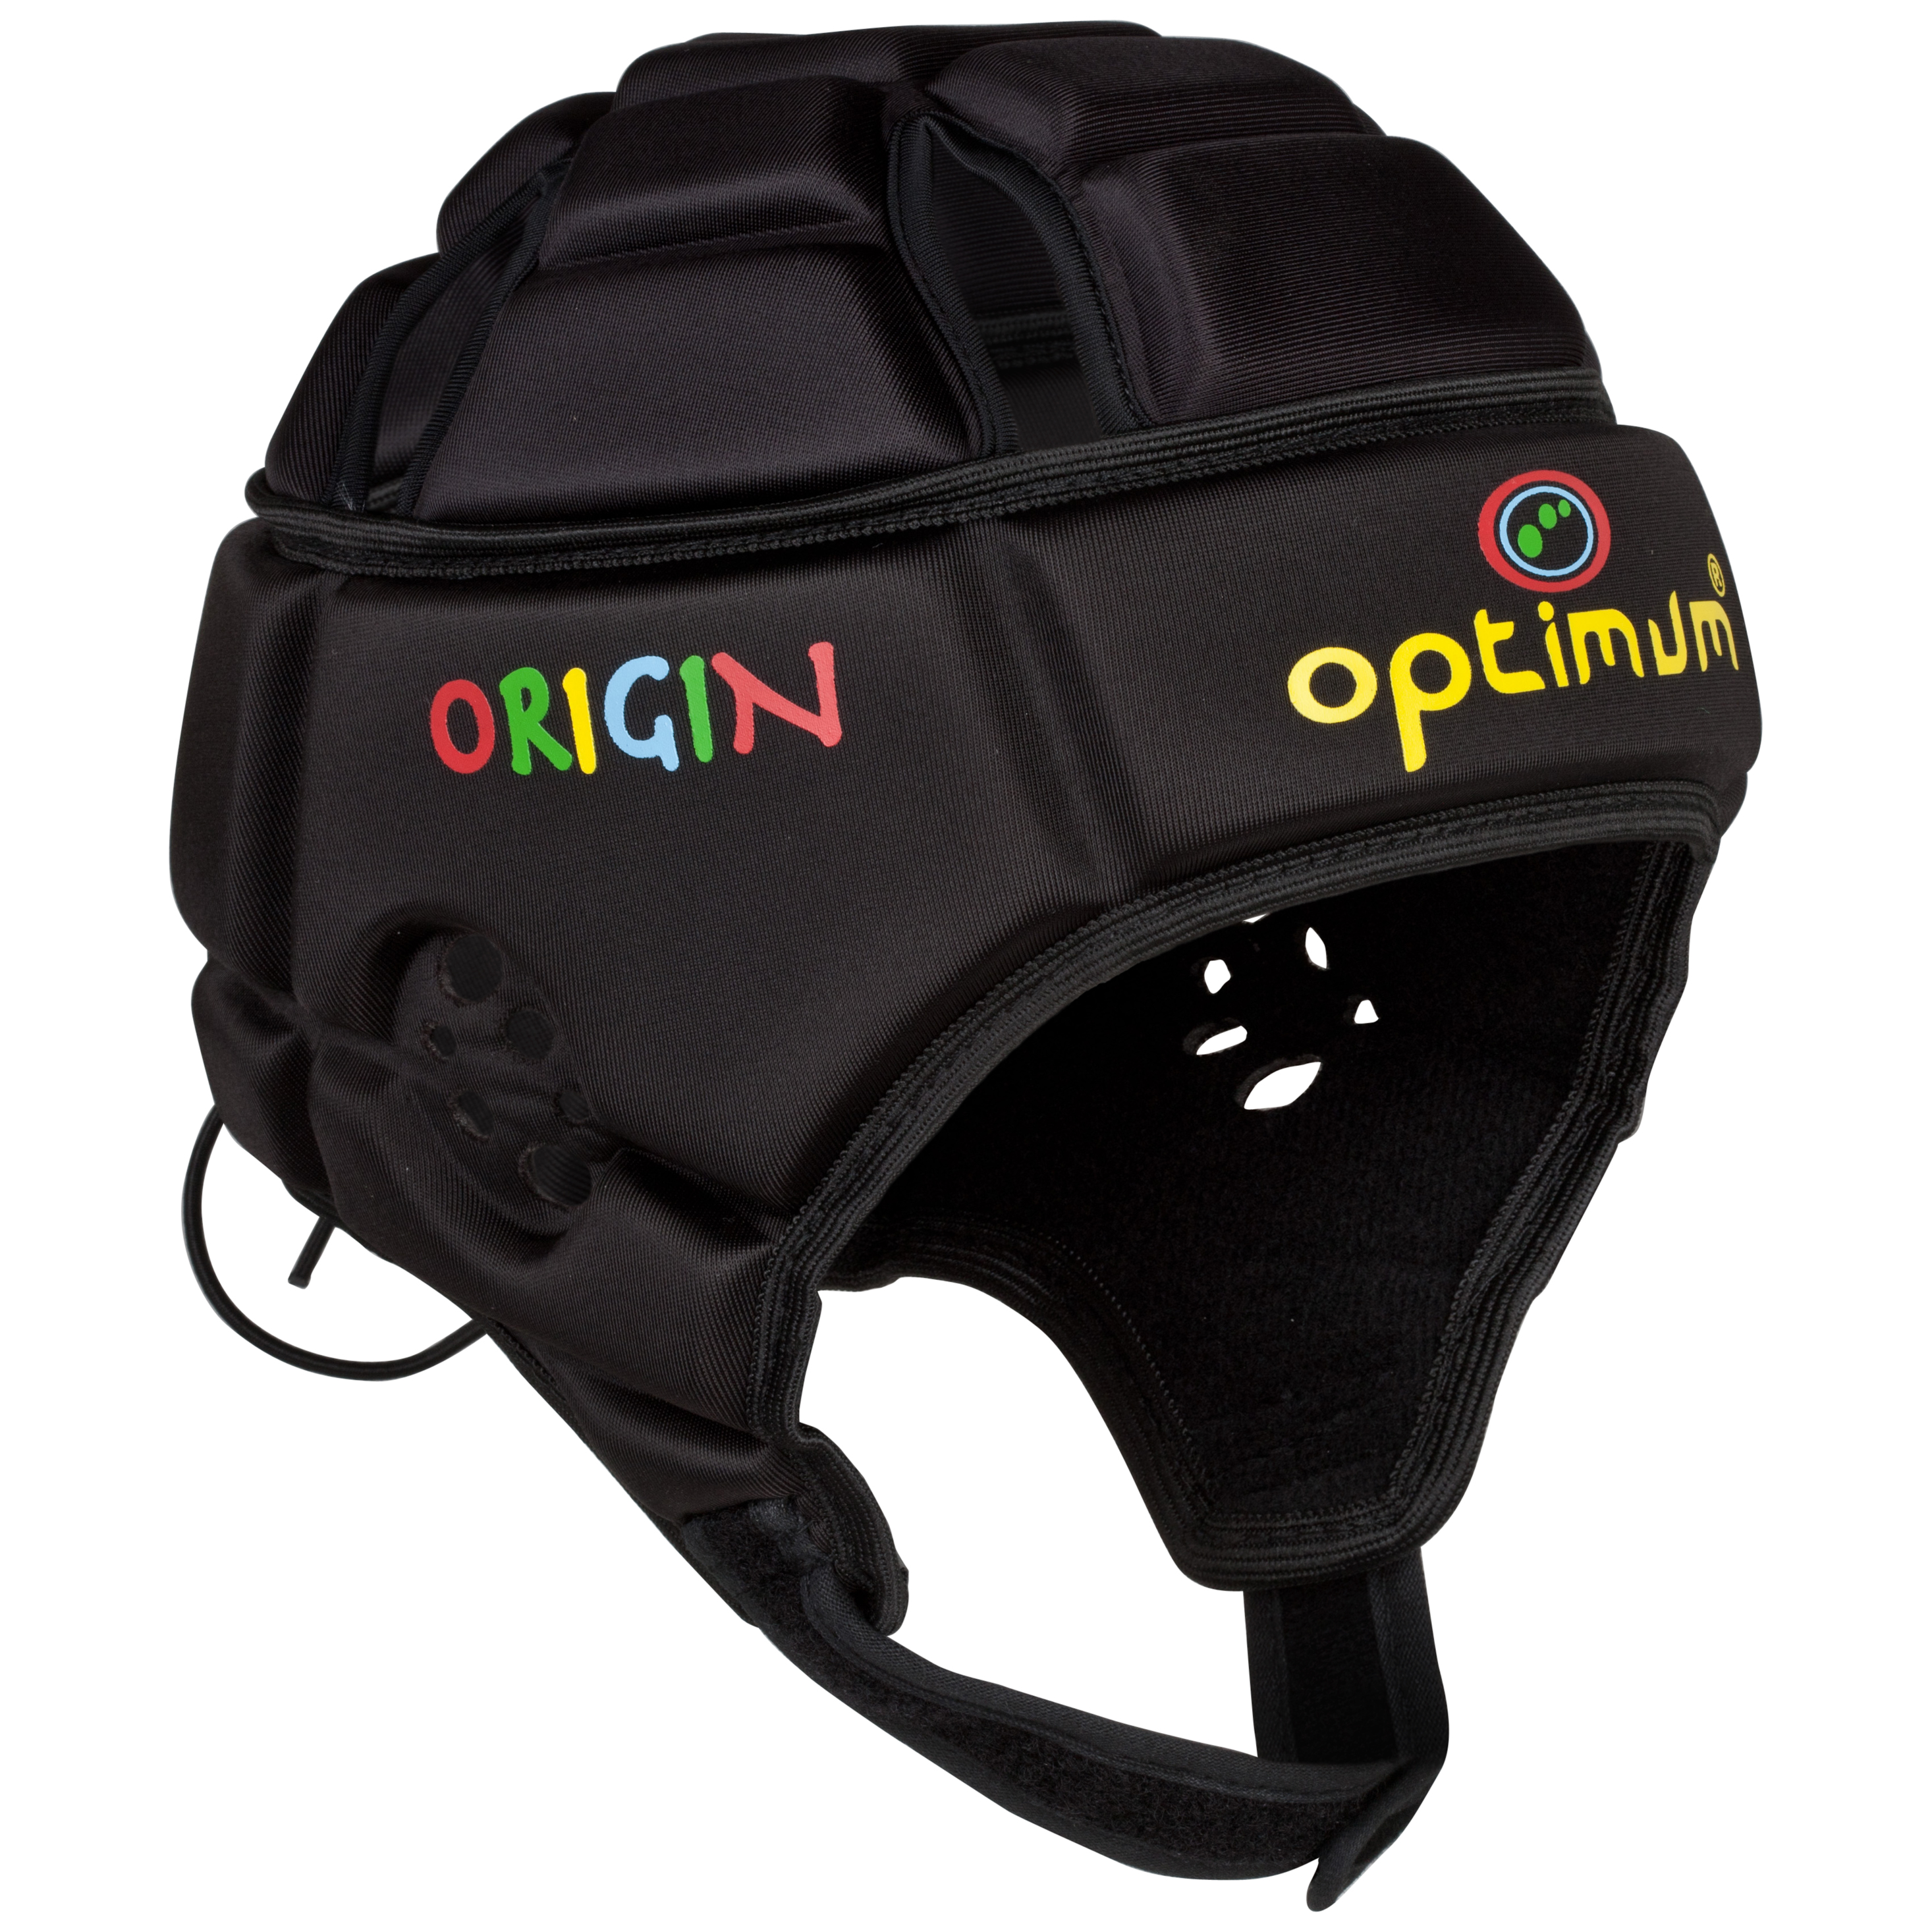 Optimum Rugby Hedweb Classic Origin Headguard - Bokka